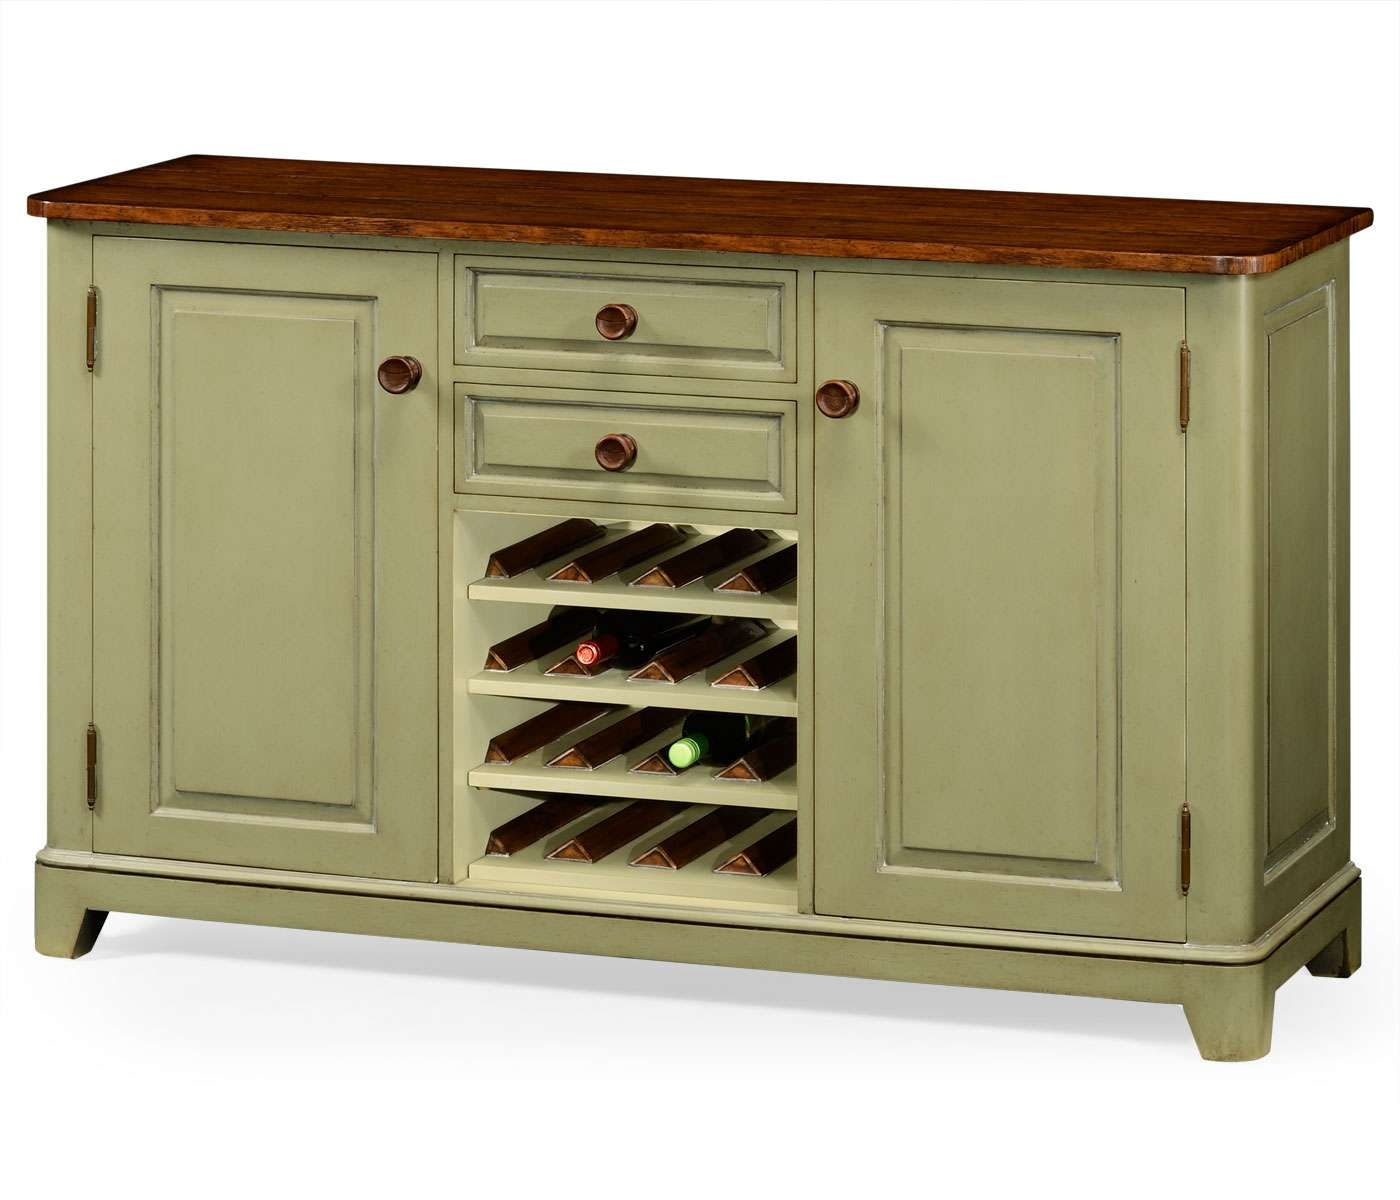 Things To Know About Sideboard With Wine Racks Bonnie Is Good Inside Sideboards With Wine Rack (View 14 of 20)